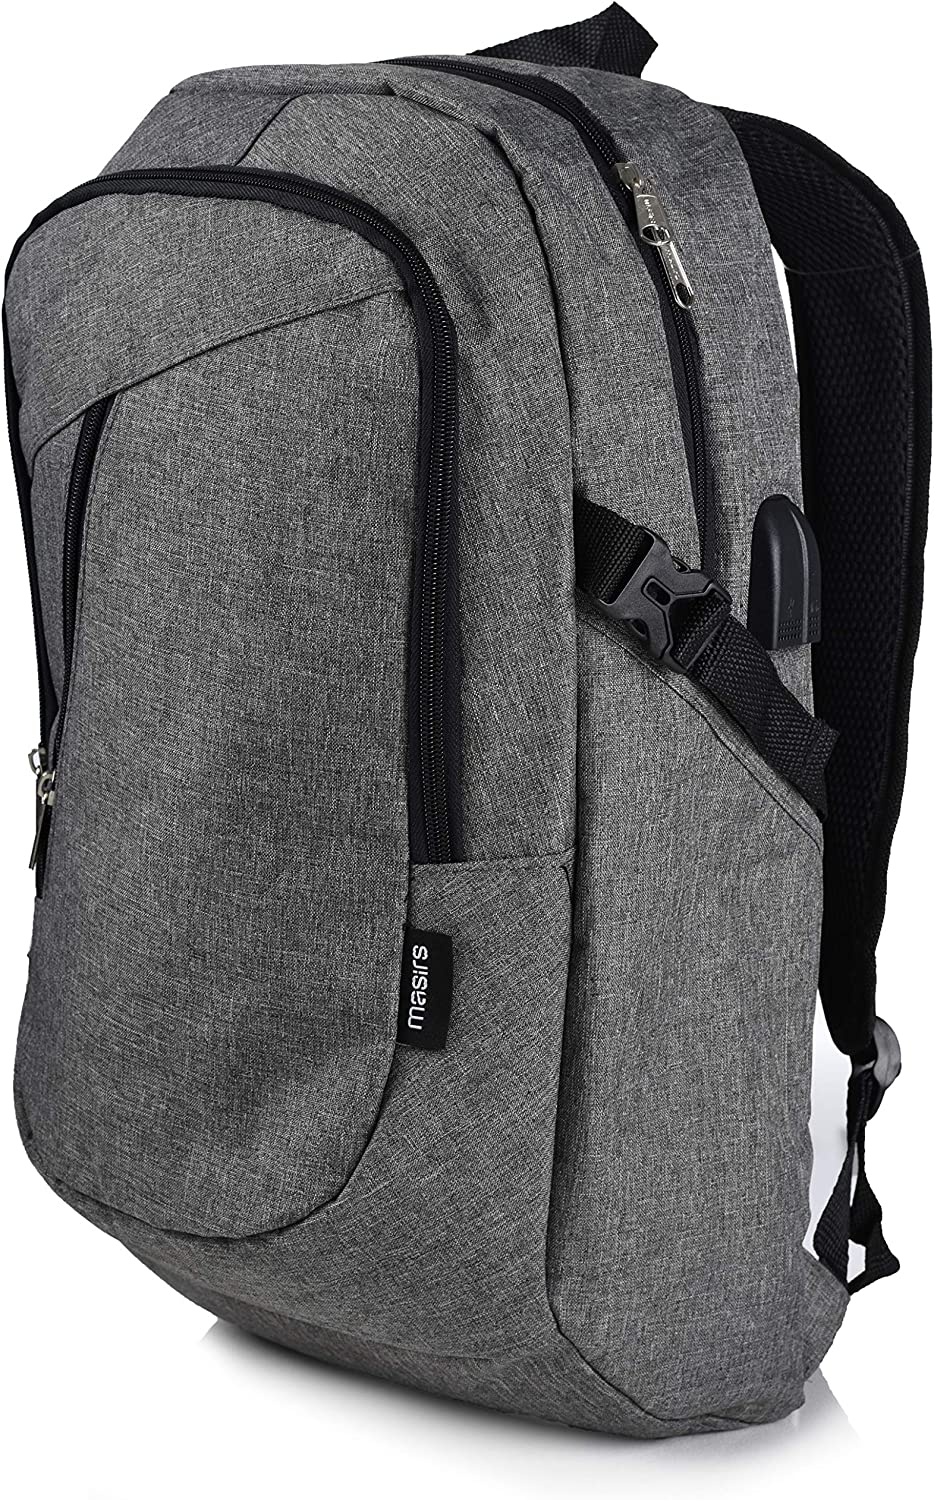 Laptop Travel Backpack – Adjustable Shoulder Straps, Zippered Compartments with Side Pockets for Water Bottle or Umbrella. Headset and USB Charging Port. Perfect for School, Business or Traveling.